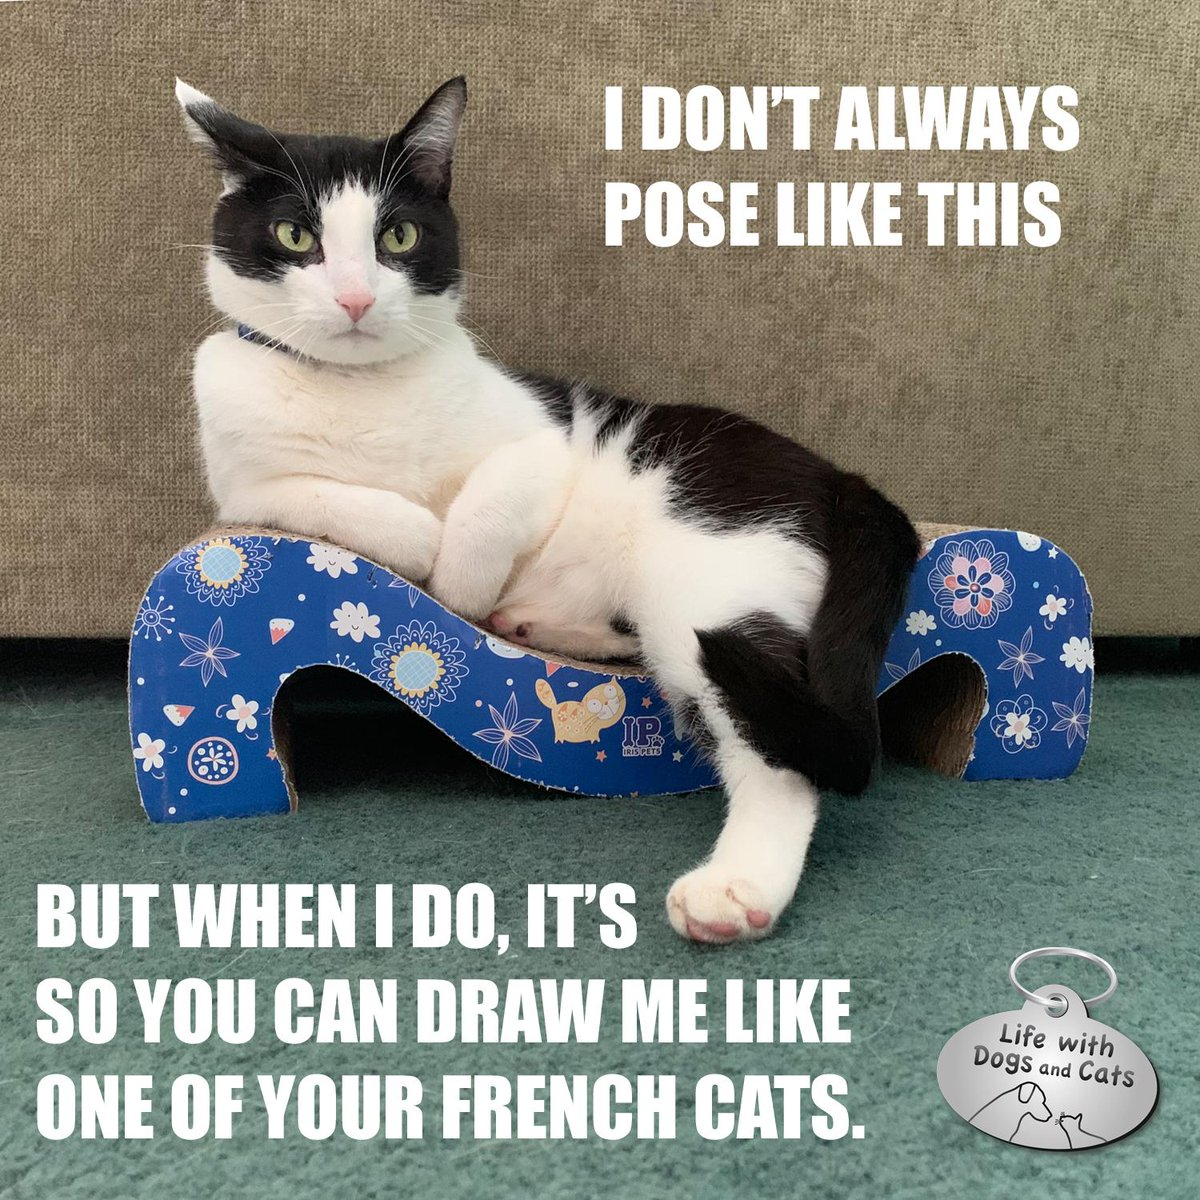 I don't always pose like this. But when I do, it's so you can draw me like one of your French cats. #CalvinTKatz #TheMostInterestingCatInTheWorld #StayComfy, my friends. See more of Calvin >> https://t.co/TgxEZrnsl5 https://t.co/kp9WYa1bBG